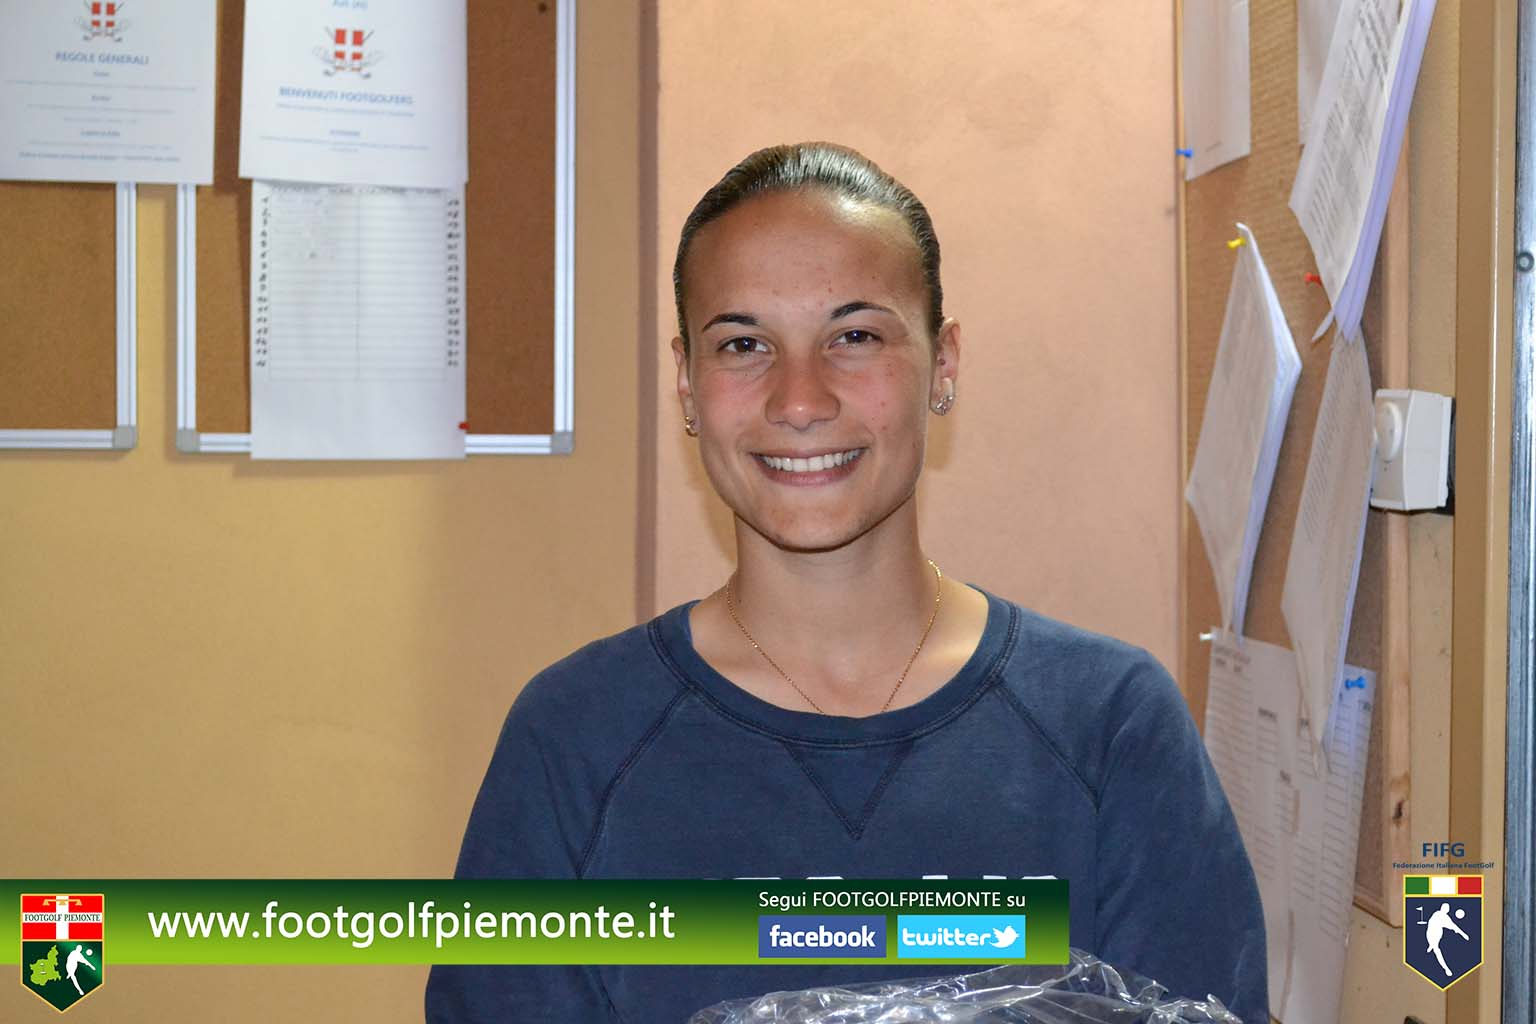 FOTO 9 Regions' Cup Footgolf Piemonte 2016 Golf Città di Asti (At) 30apr16-112